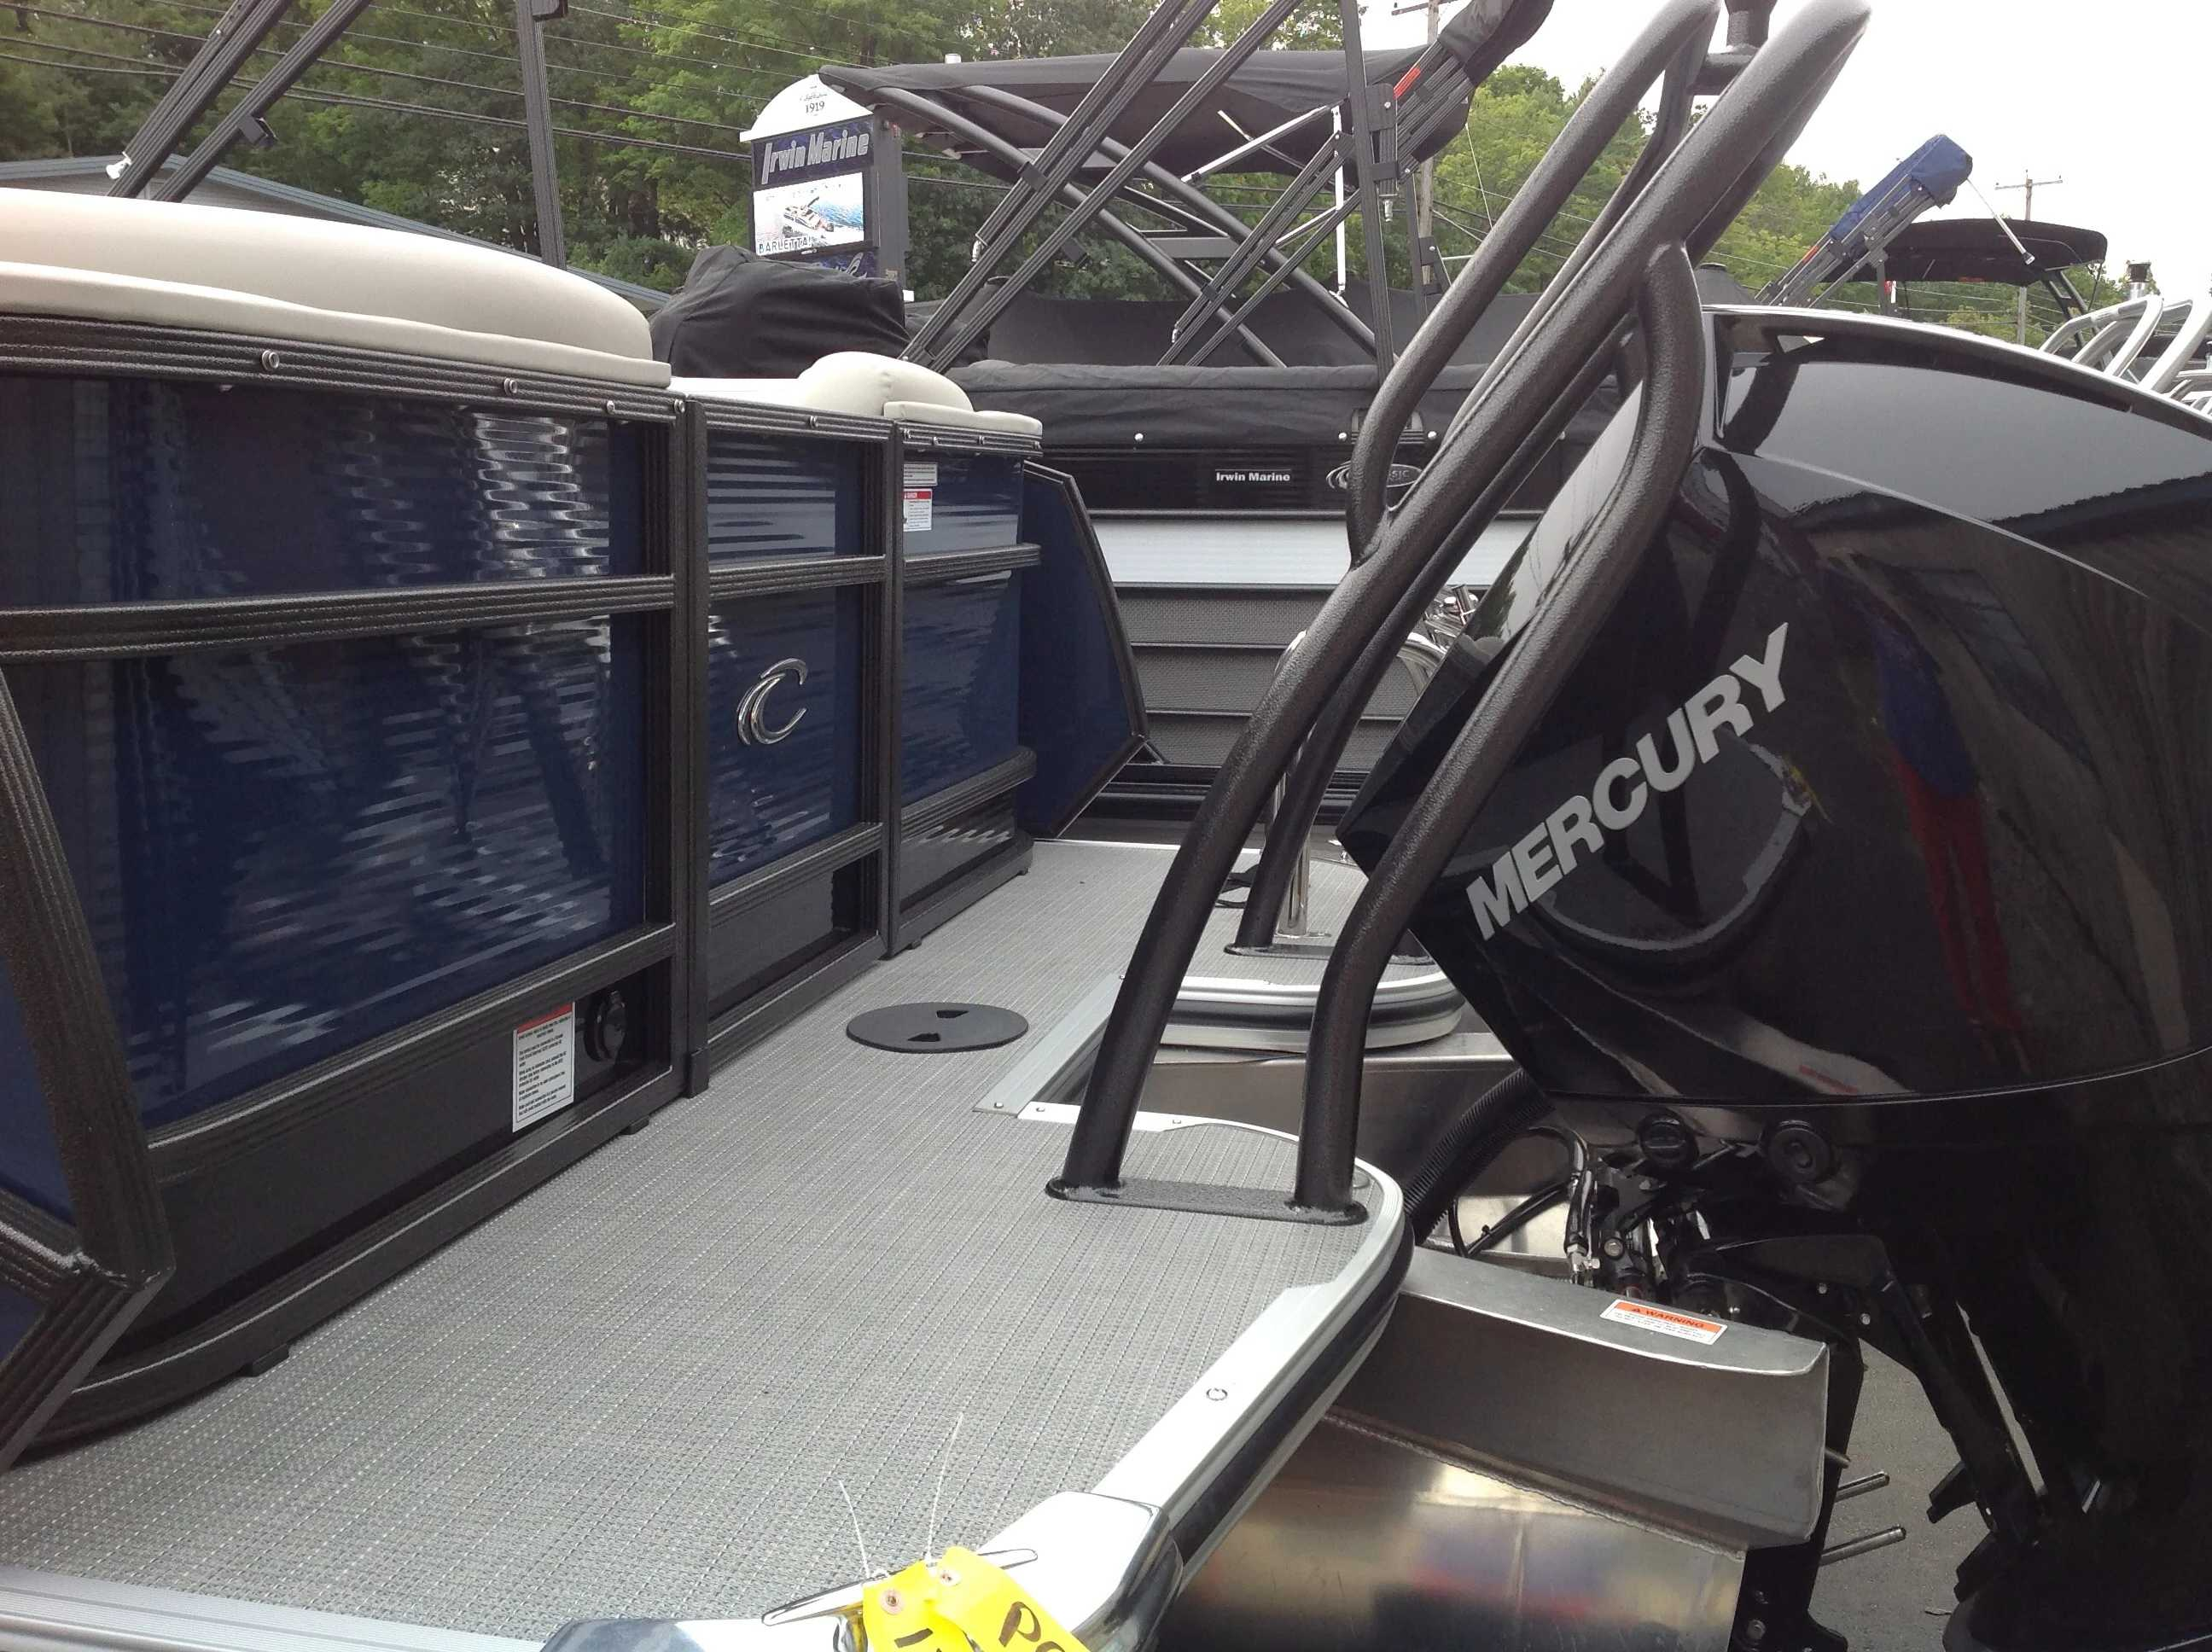 2020 Crest boat for sale, model of the boat is Caribbean Lx250 Slc & Image # 15 of 16